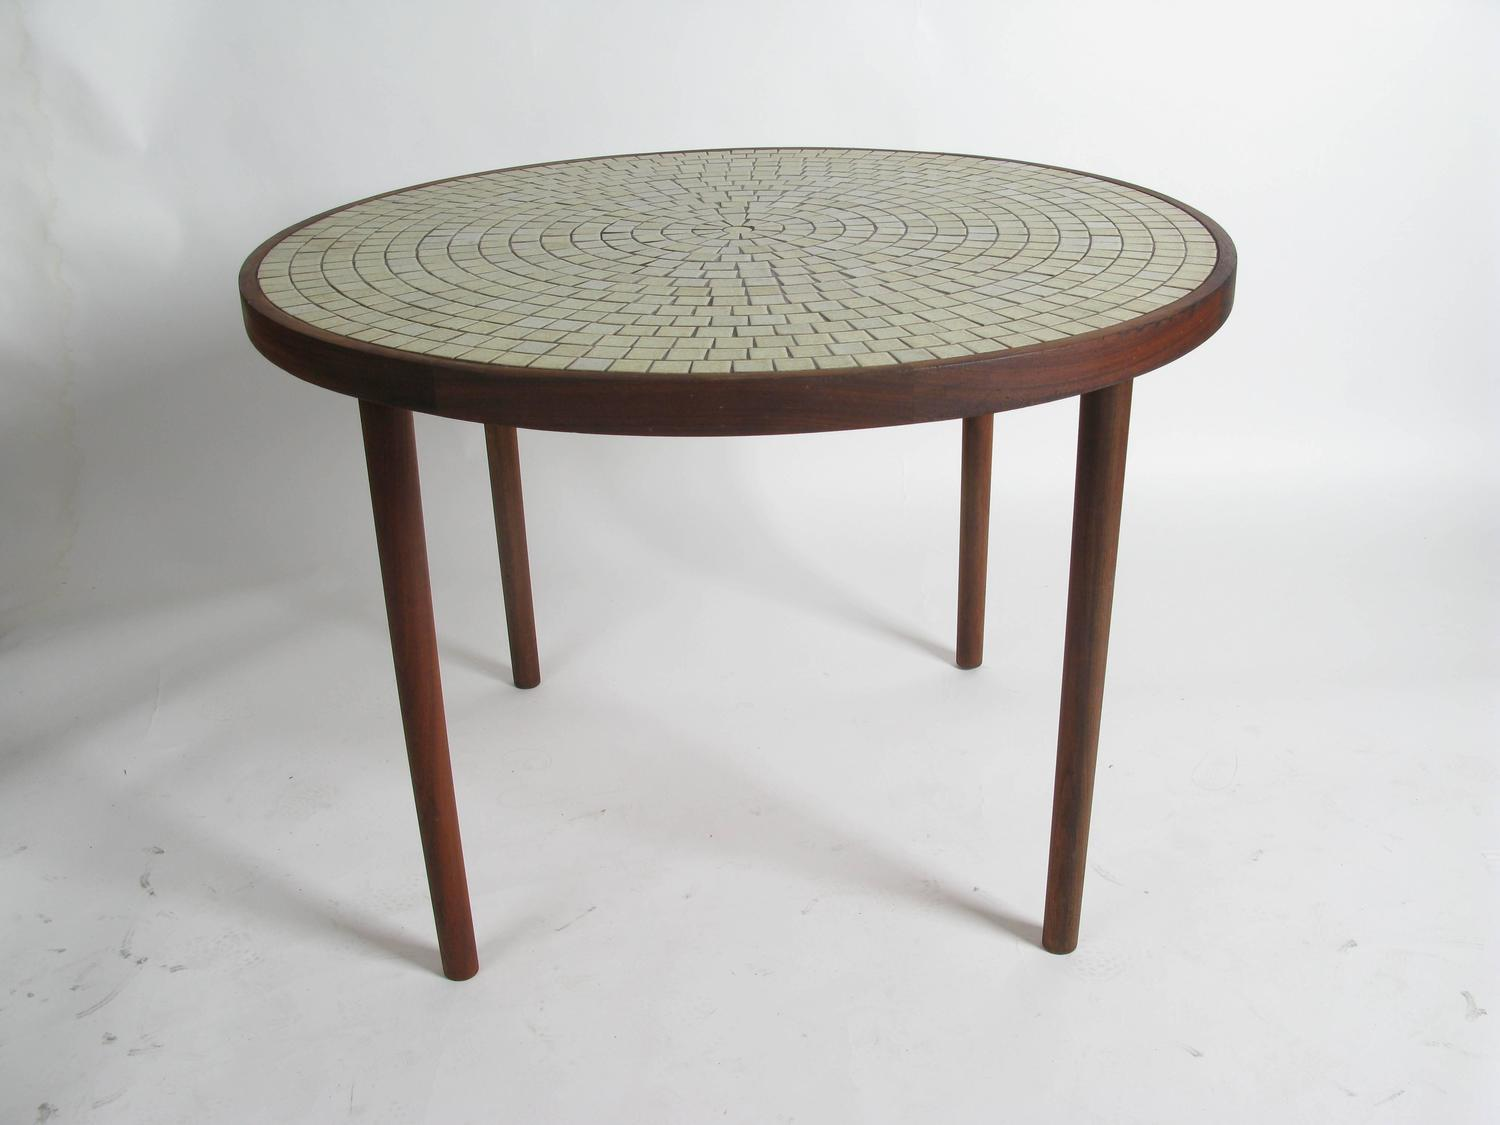 walnut and ceramic tile dining table by gordon martz for